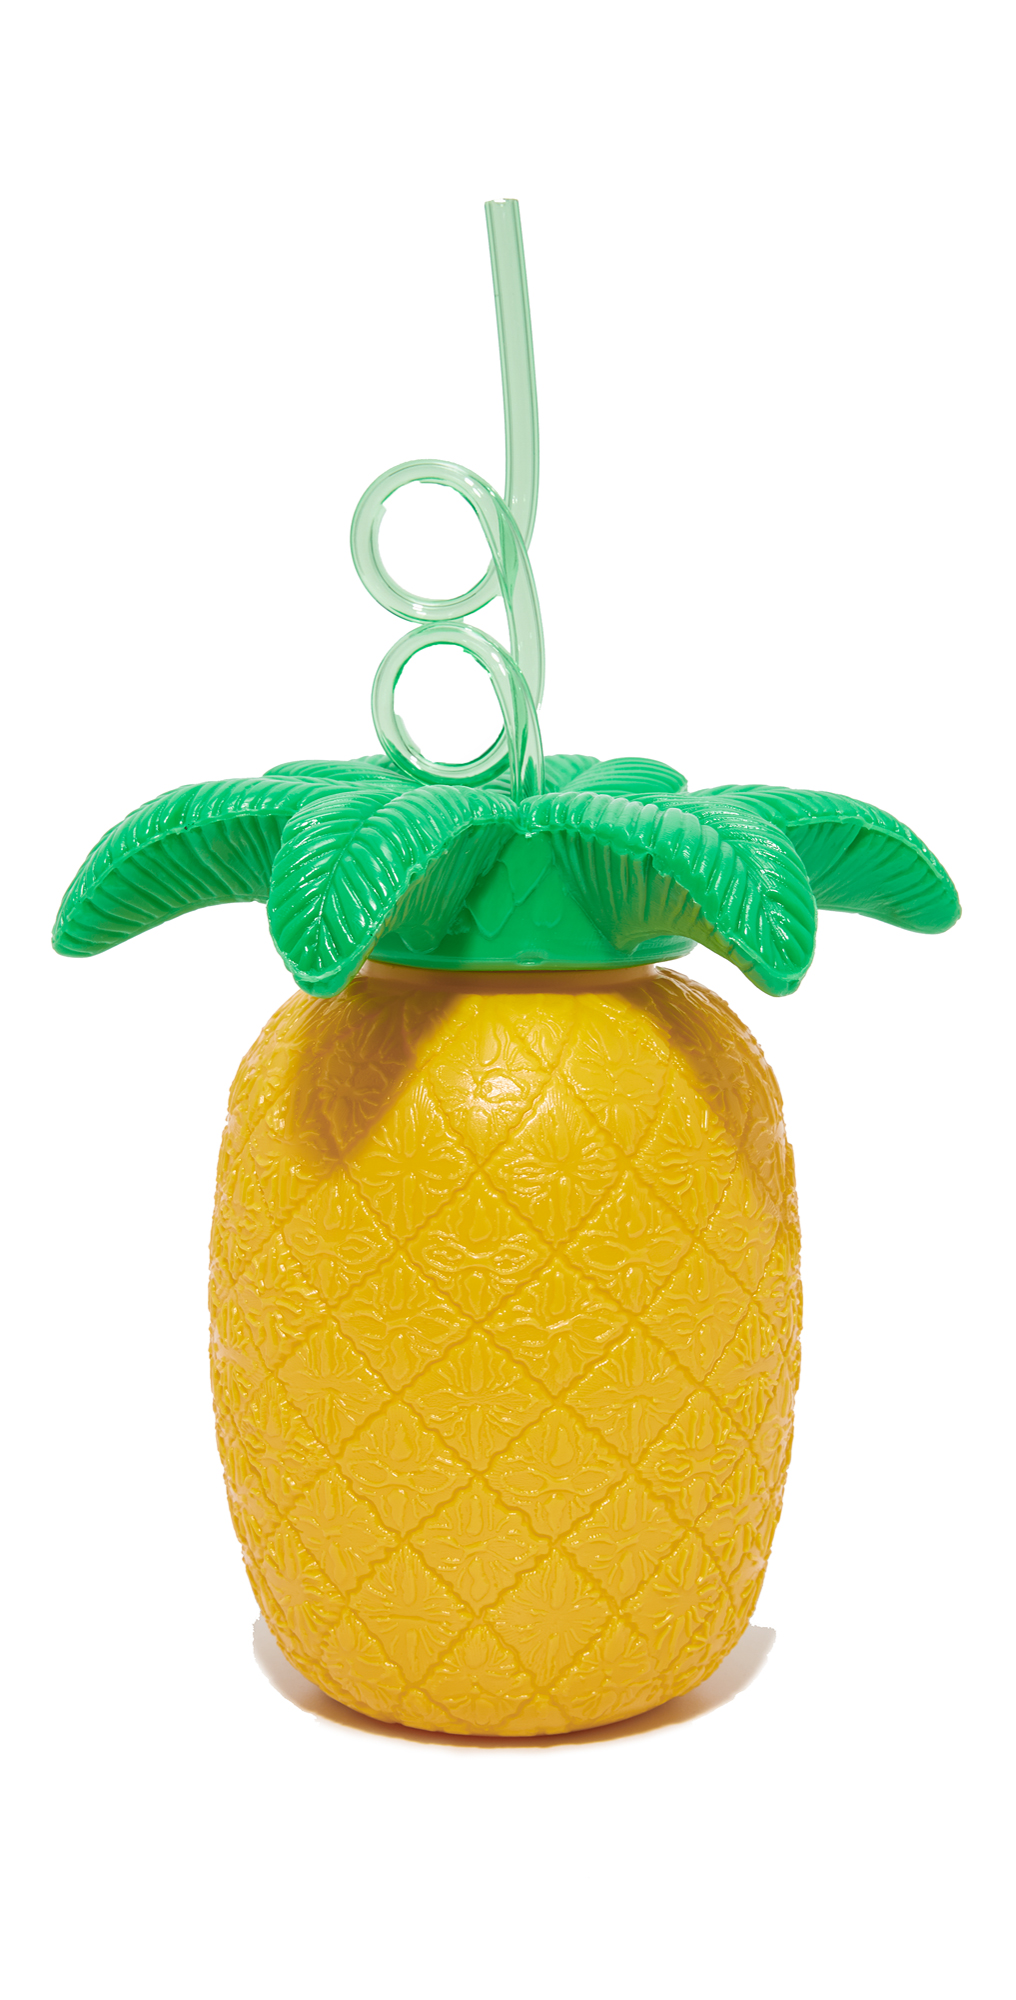 Pineapple Sipper Cup SunnyLife